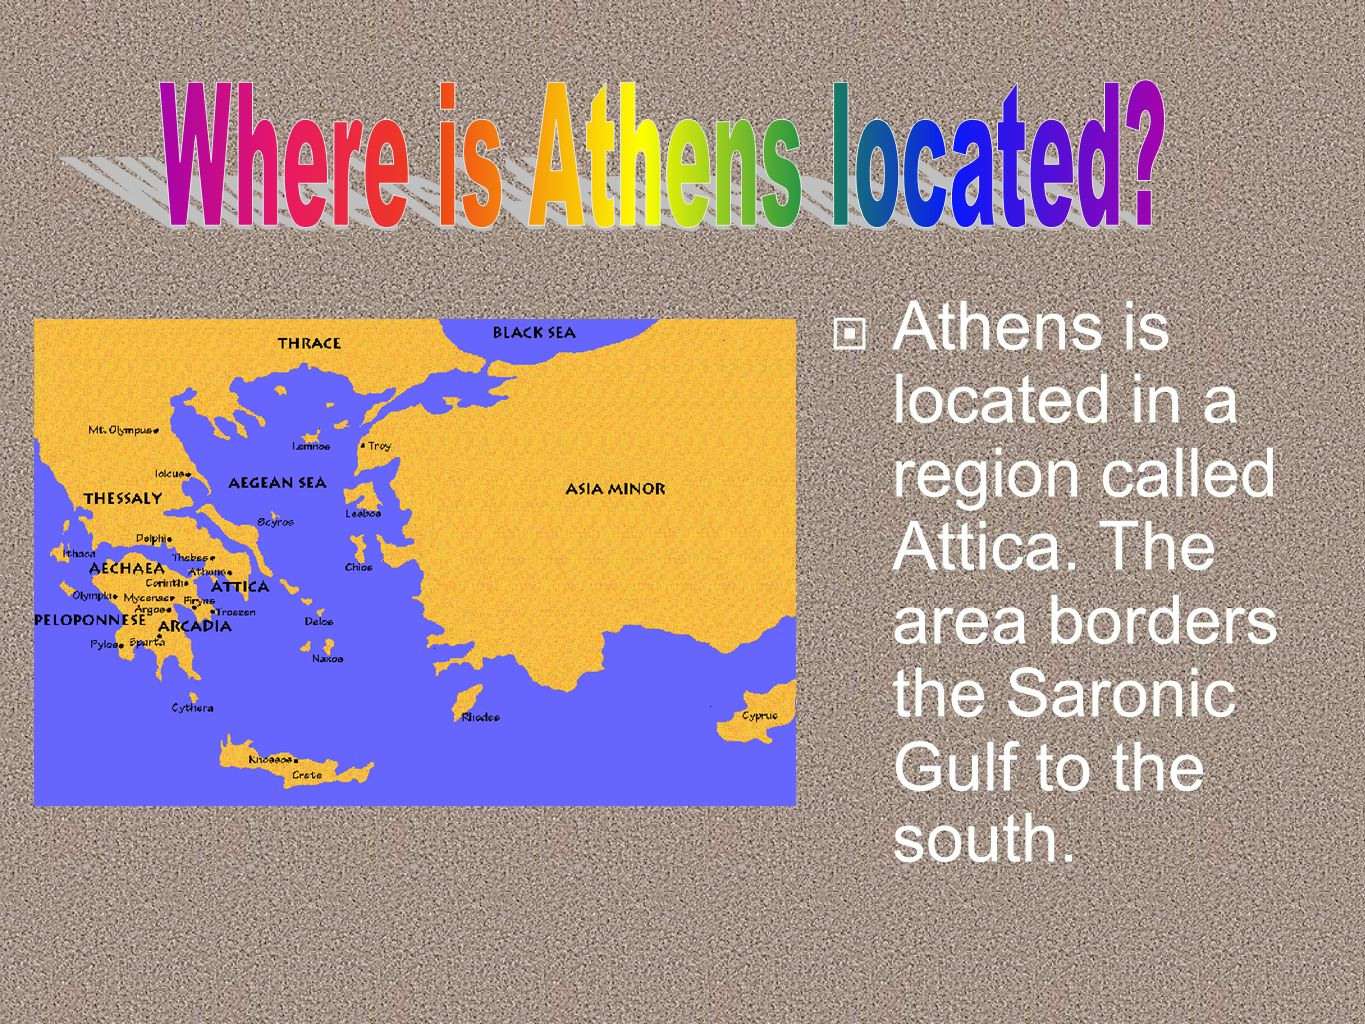 Athens And Sparta Became The Two Most Powerful Citystates In - Where is athens located